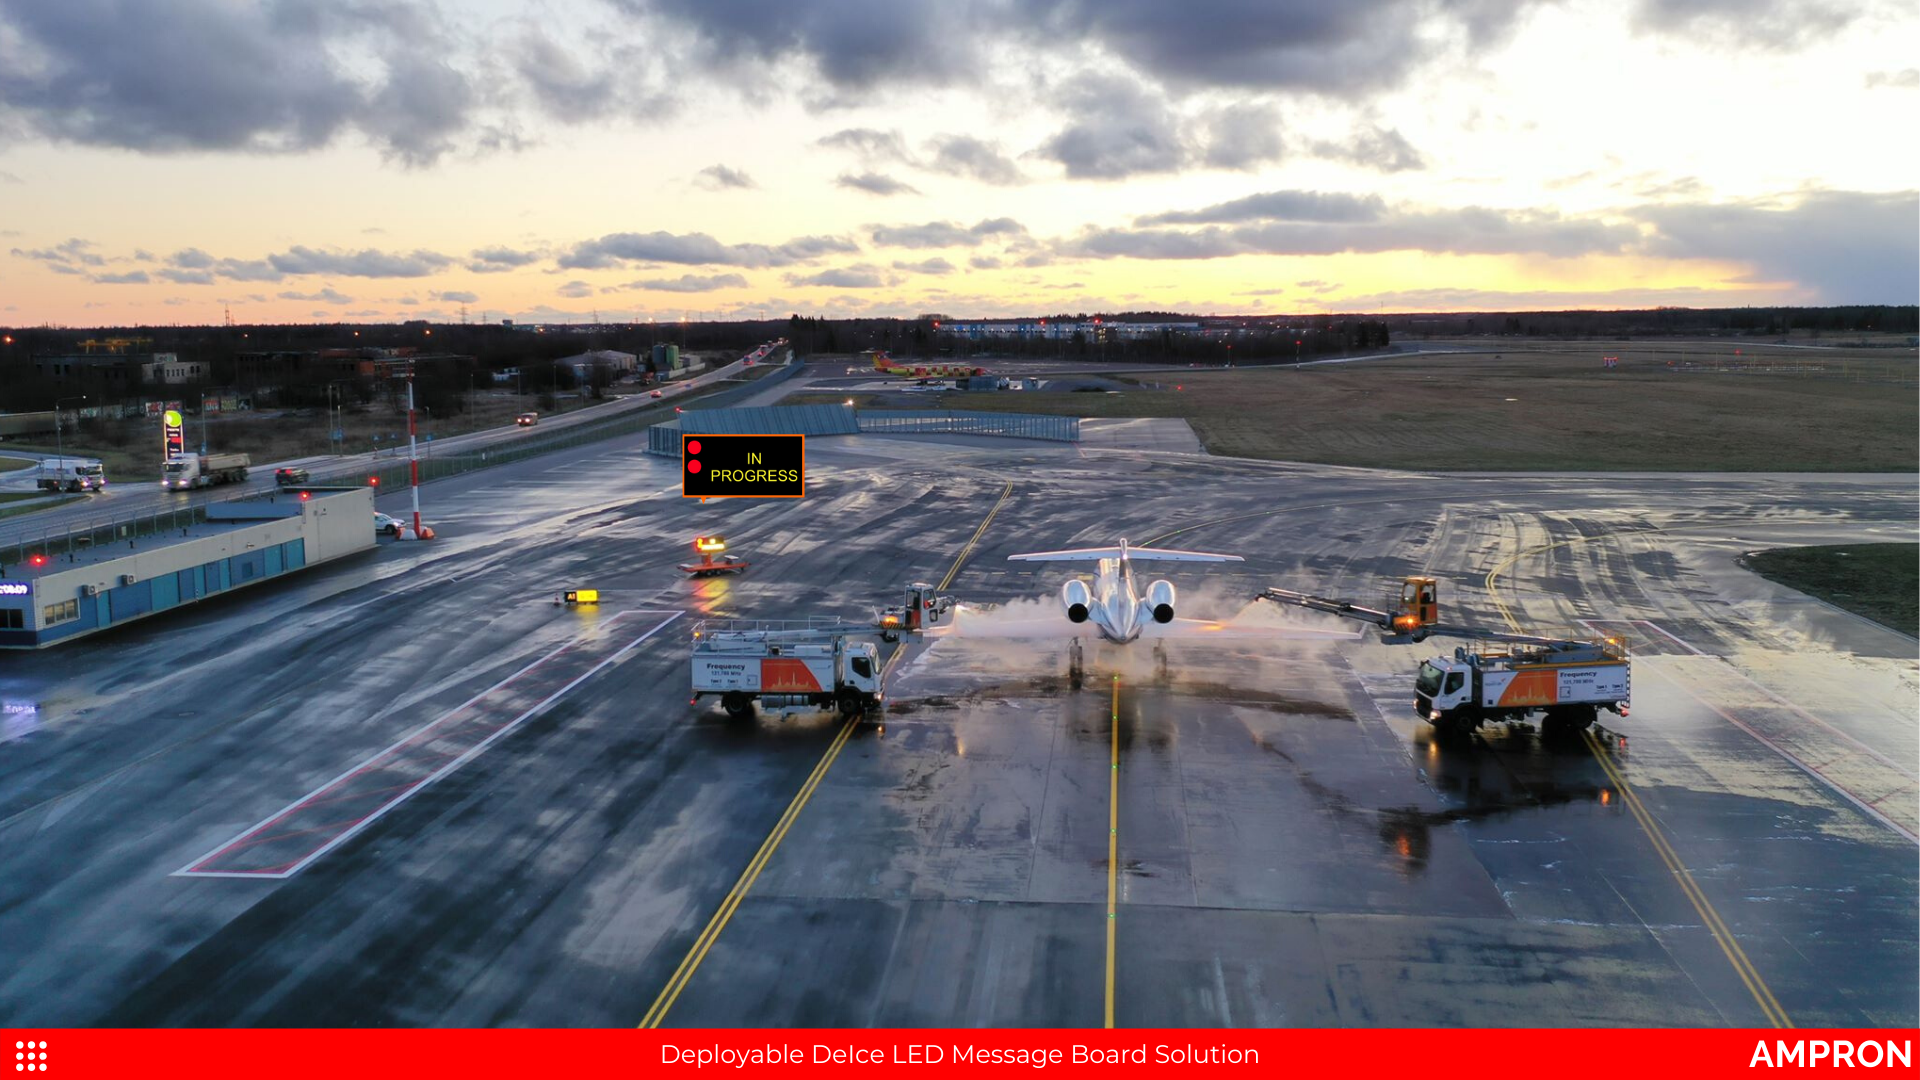 Deployable DeIce LED Message Board Solution at Tallinn Airport